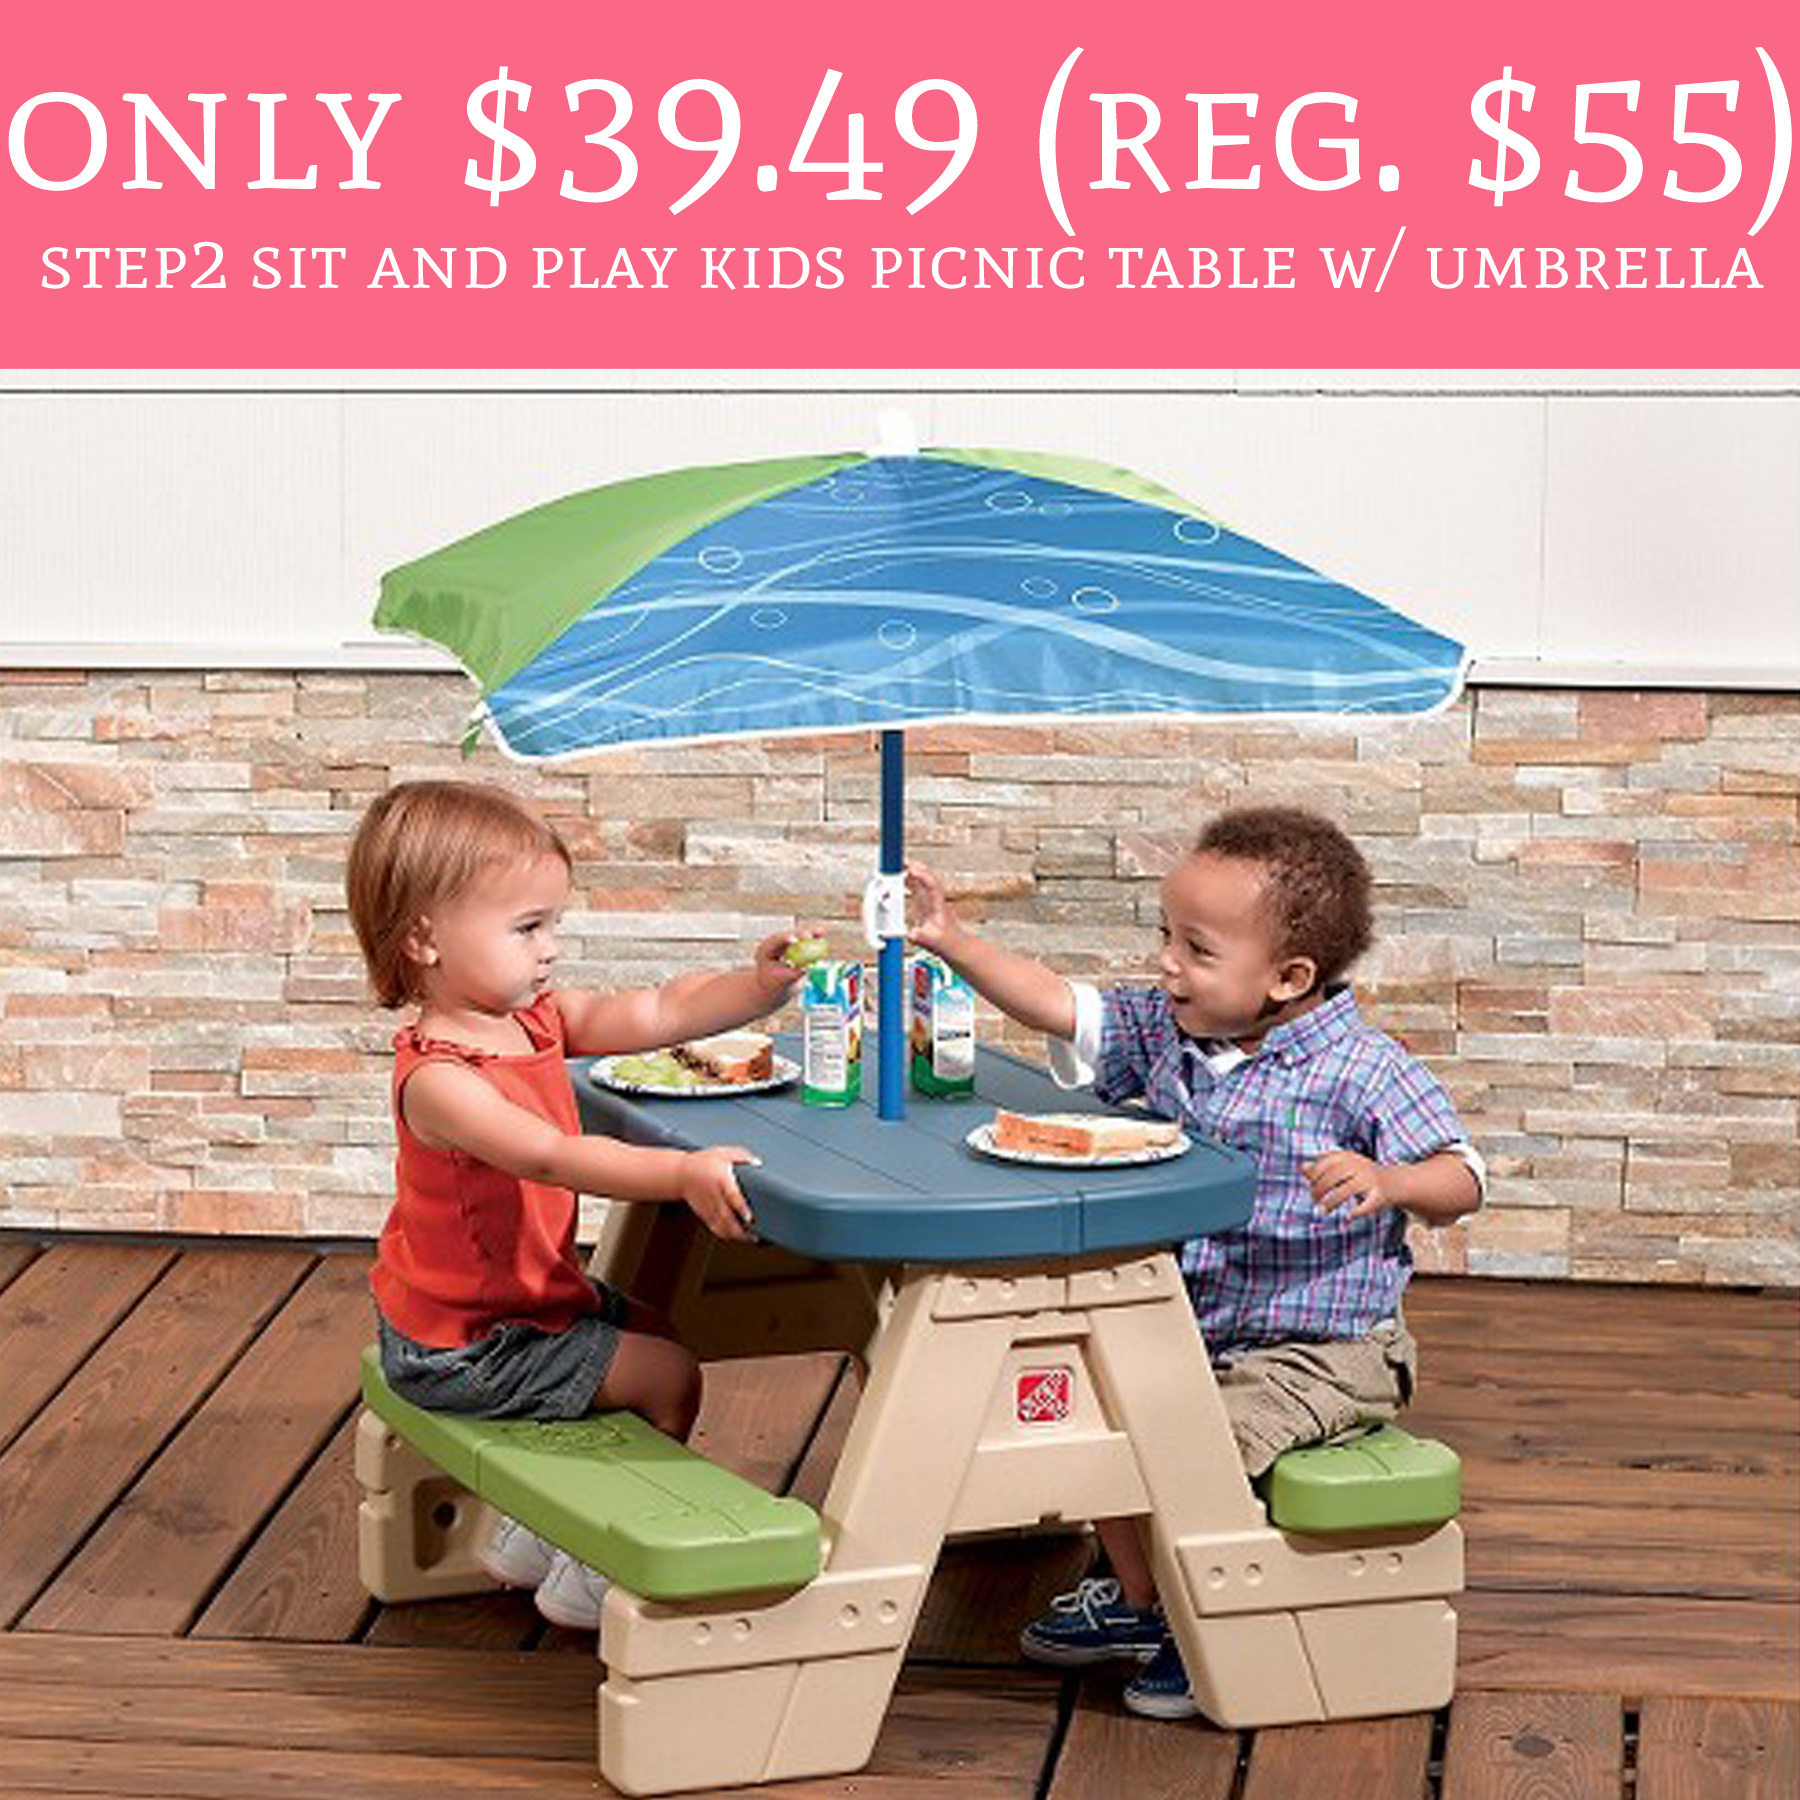 step2 table and chairs with umbrella ikea childrens chair rare savings 39 49 regular 55 sit play kids